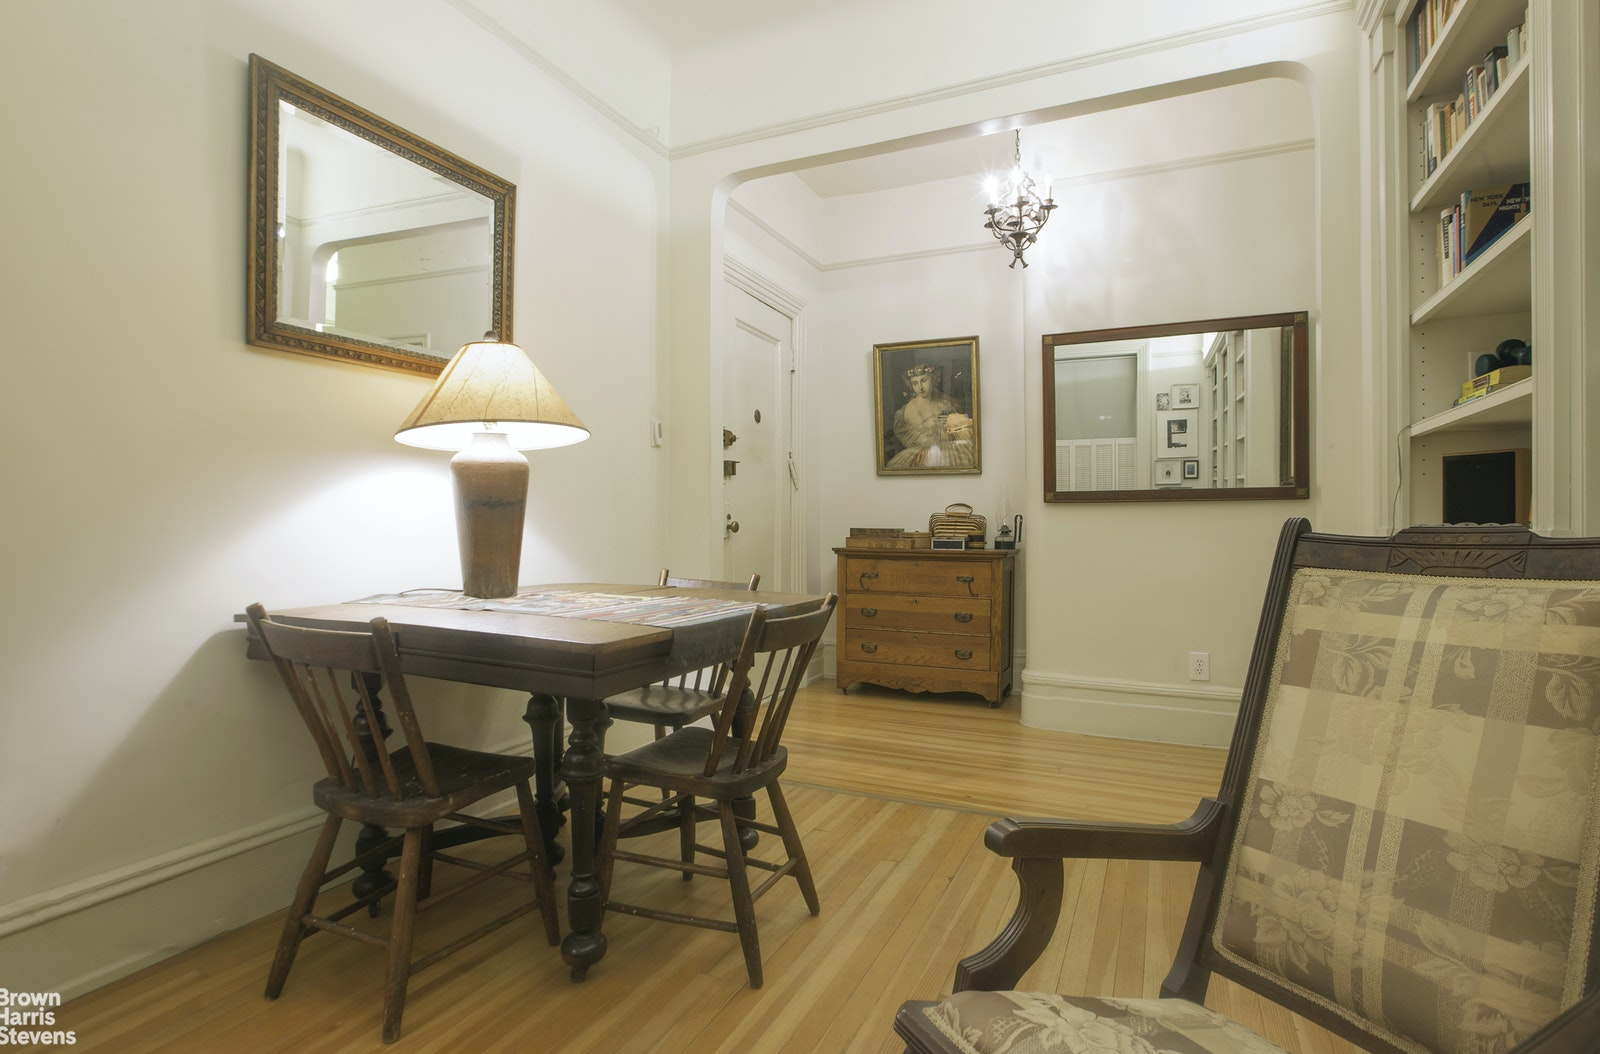 615 West 113th Street, Upper West Side, NYC, 10025, $415,000, Property For Sale, Halstead Real Estate, Photo 4